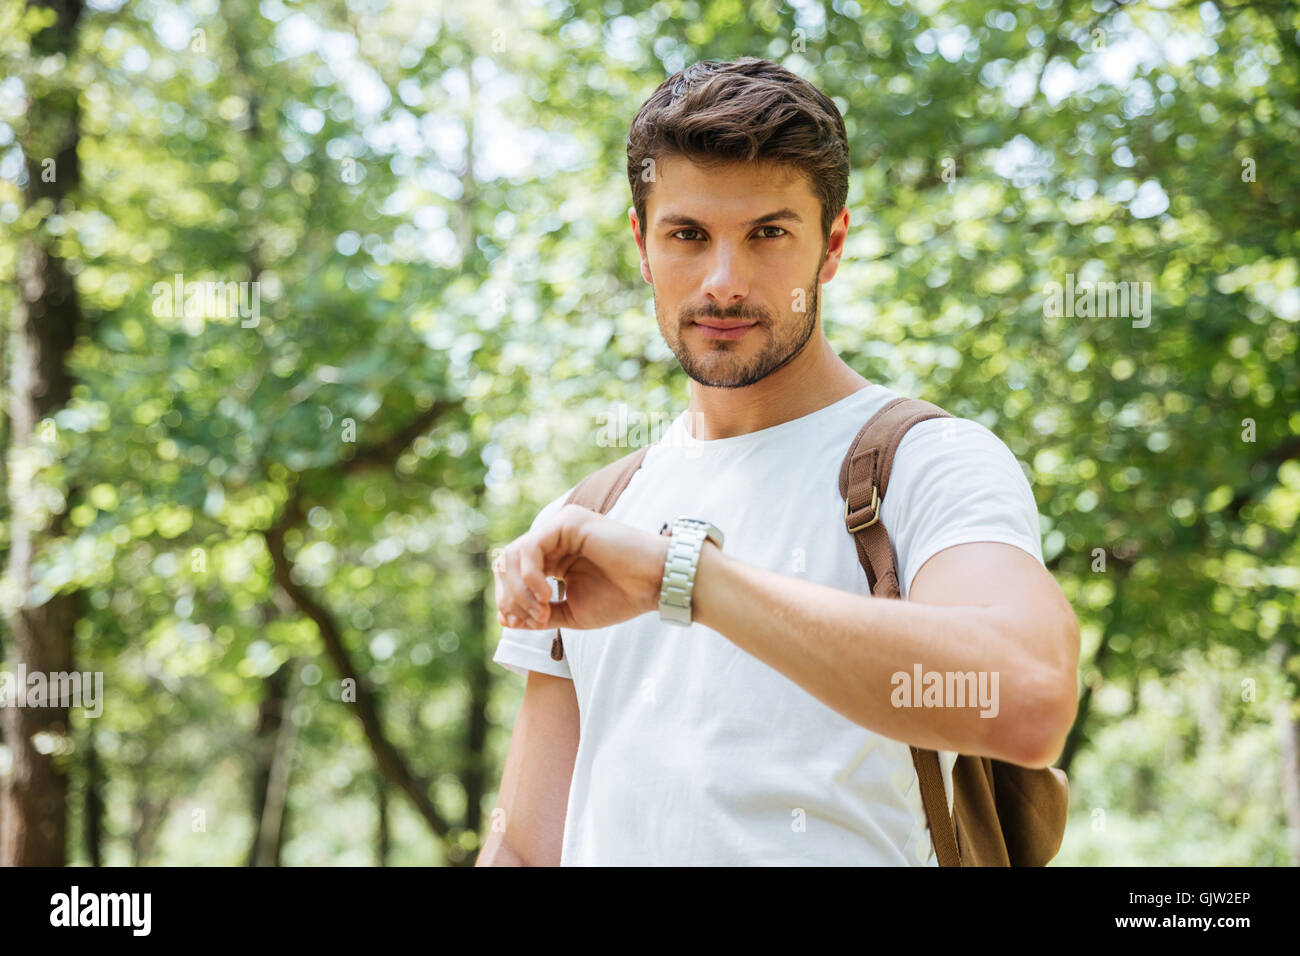 Serious young man with backpack checking time and looking at watch in forest - Stock Image